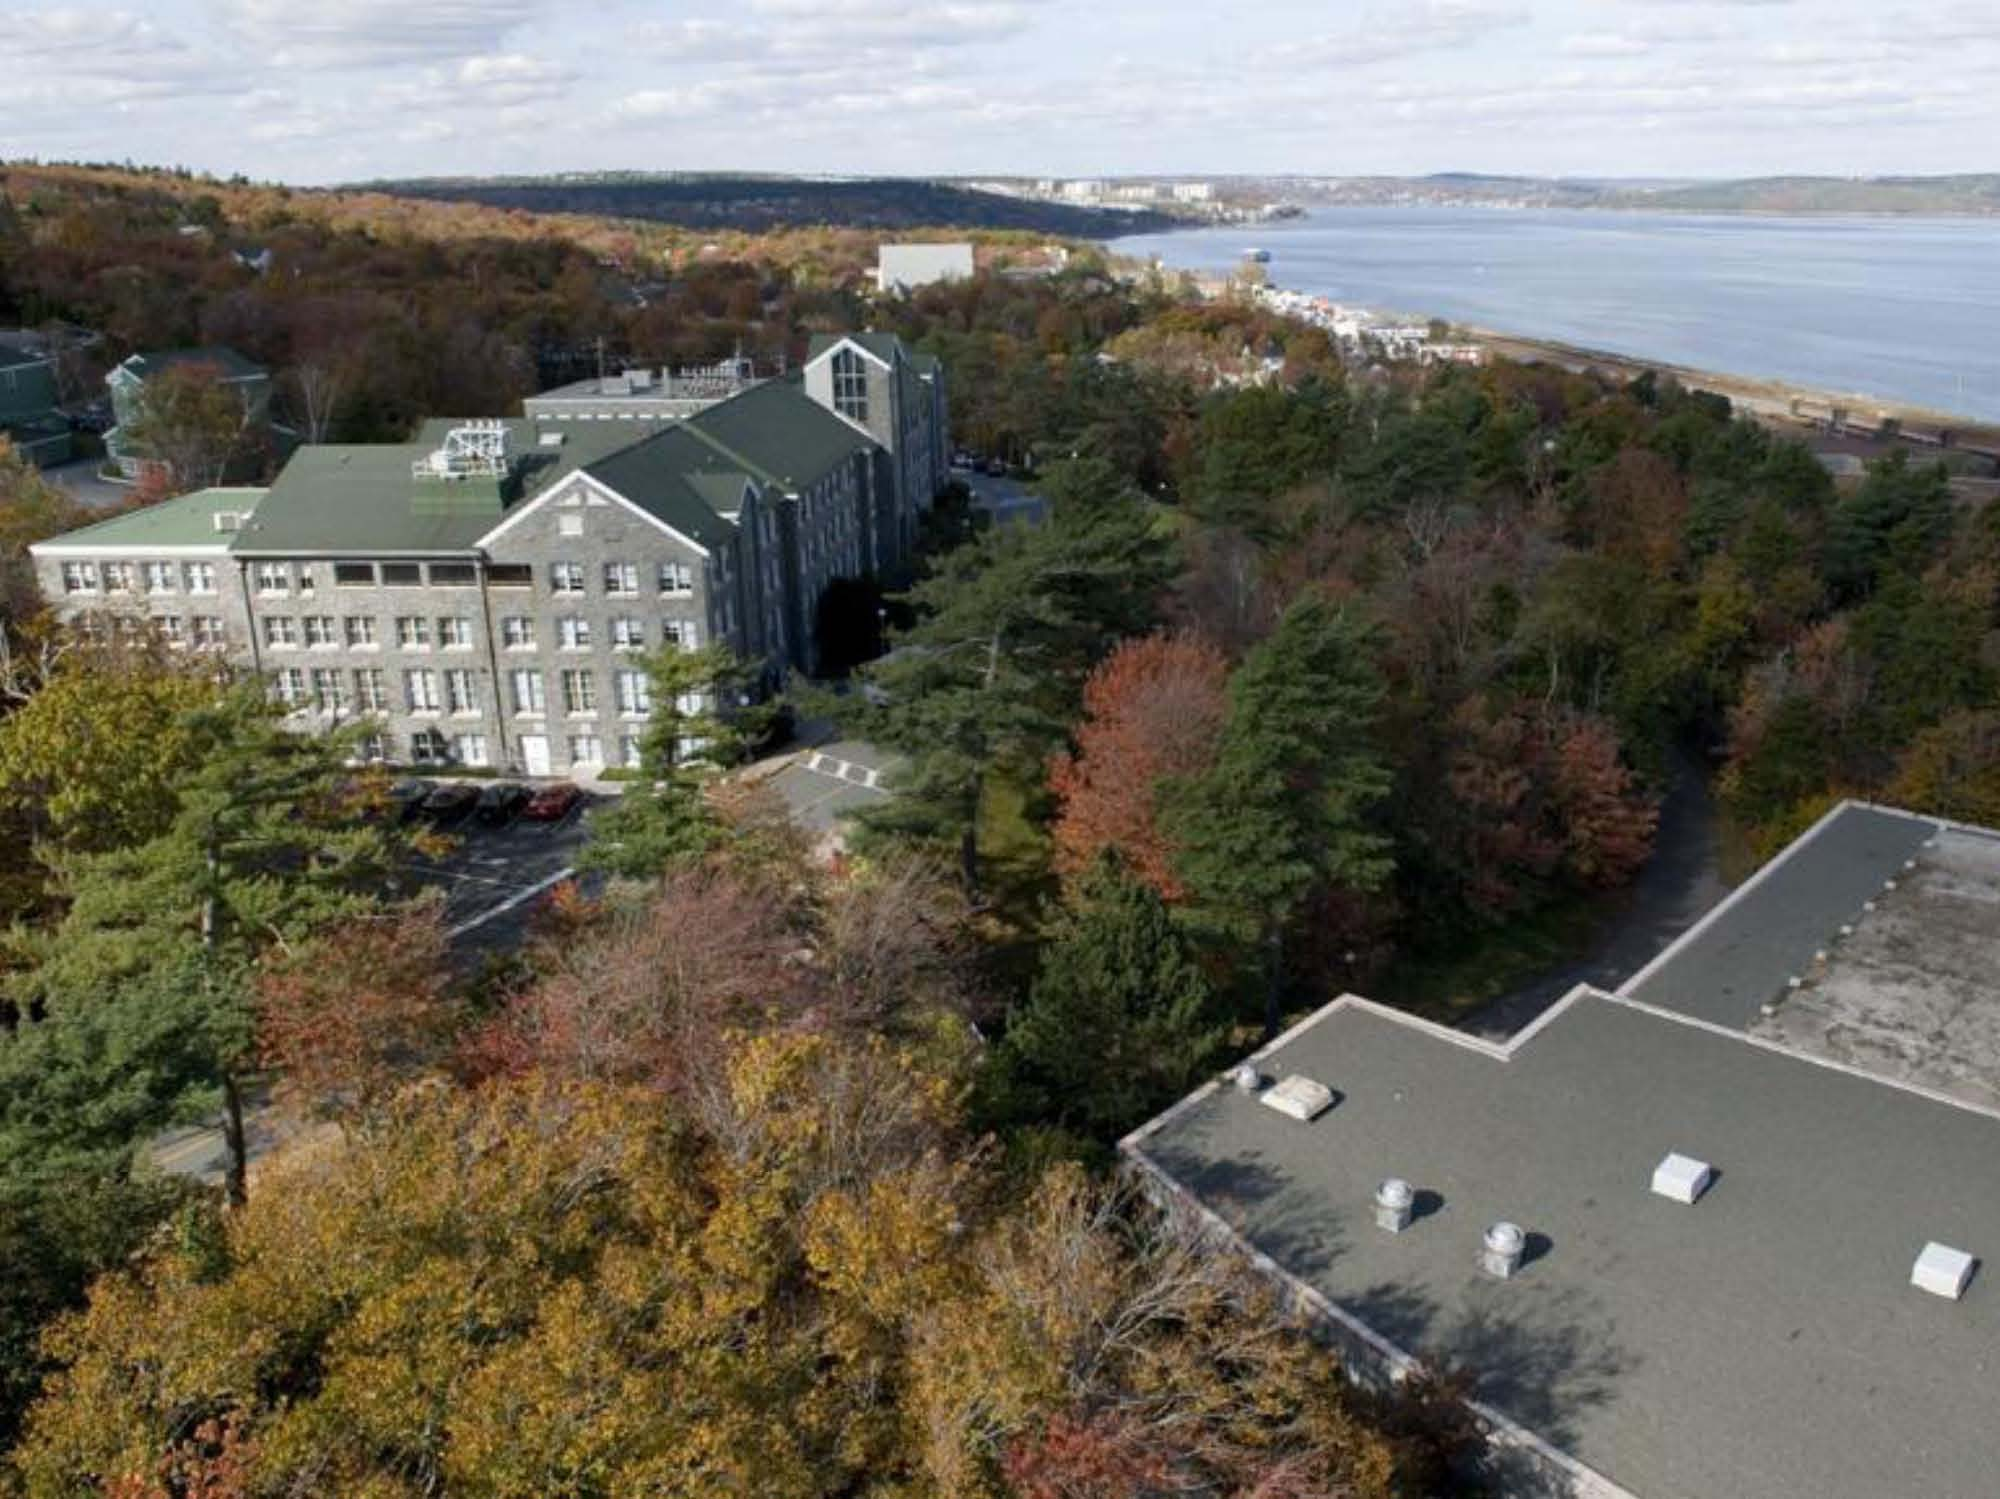 Success College Nova Scotia http://studentabroadmagazine.wordpress.com/2010/10/22/a-mount-of-history-%E2%80%93-msv-nova-scotia/